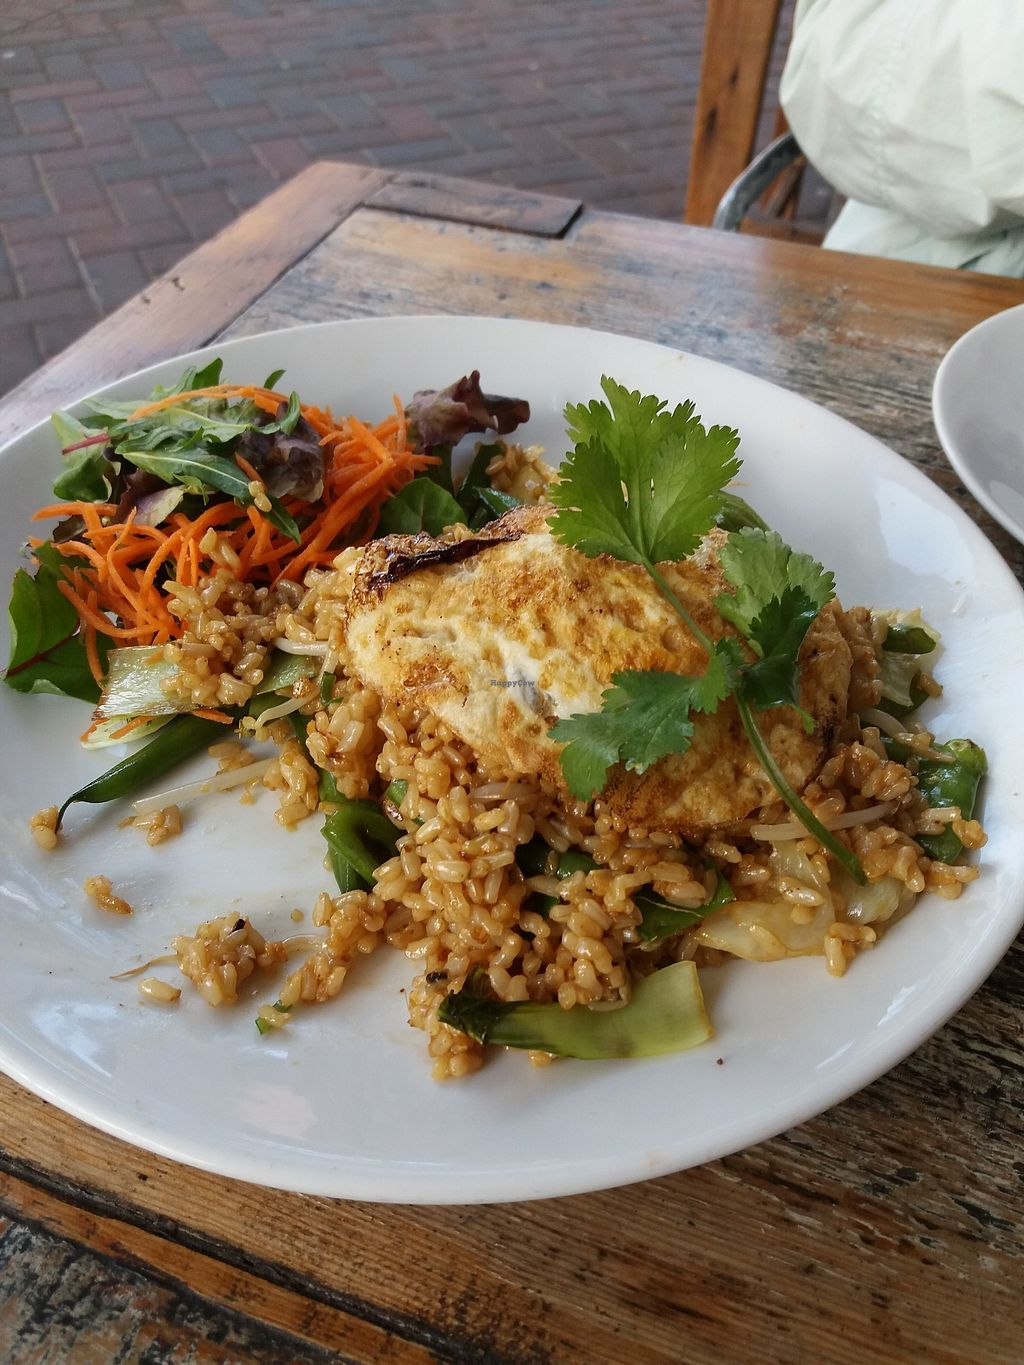 """Photo of Pure Wholefoods  by <a href=""""/members/profile/veganvirtues"""">veganvirtues</a> <br/>Nasi goreng <br/> October 9, 2017  - <a href='/contact/abuse/image/11764/313480'>Report</a>"""